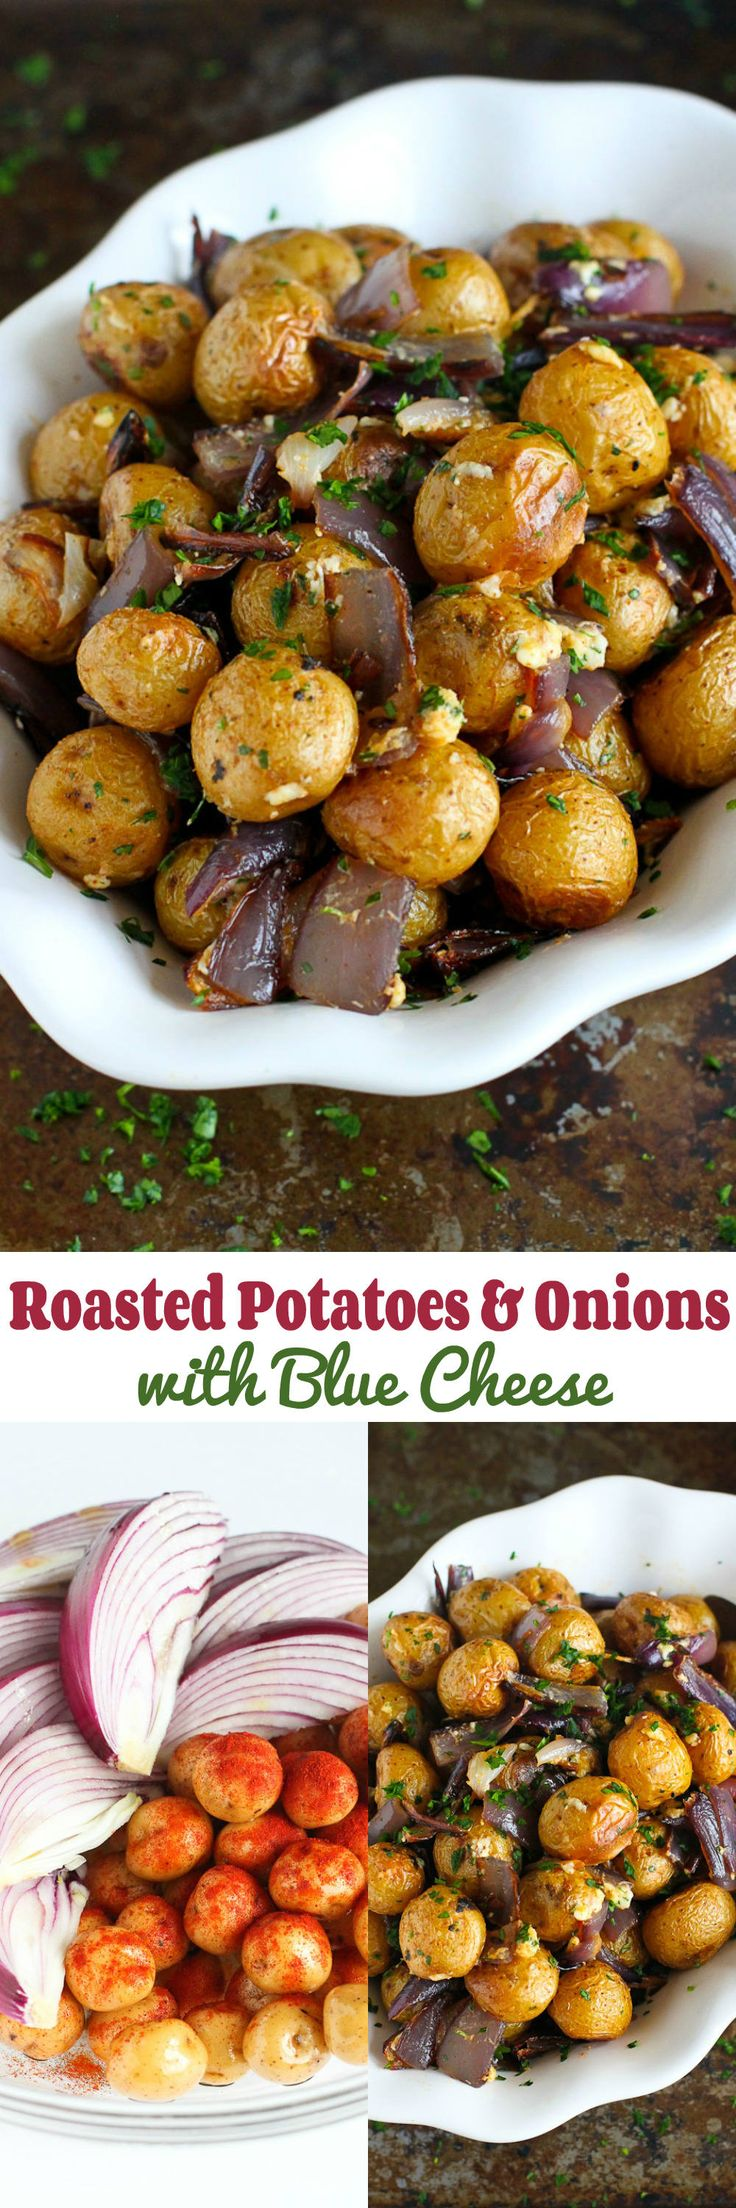 Roasted Potatoes and Onions with Blue Cheese…A side dish recipe that will steal the show! 135 calories and 4 Weight Watchers SmartPoints